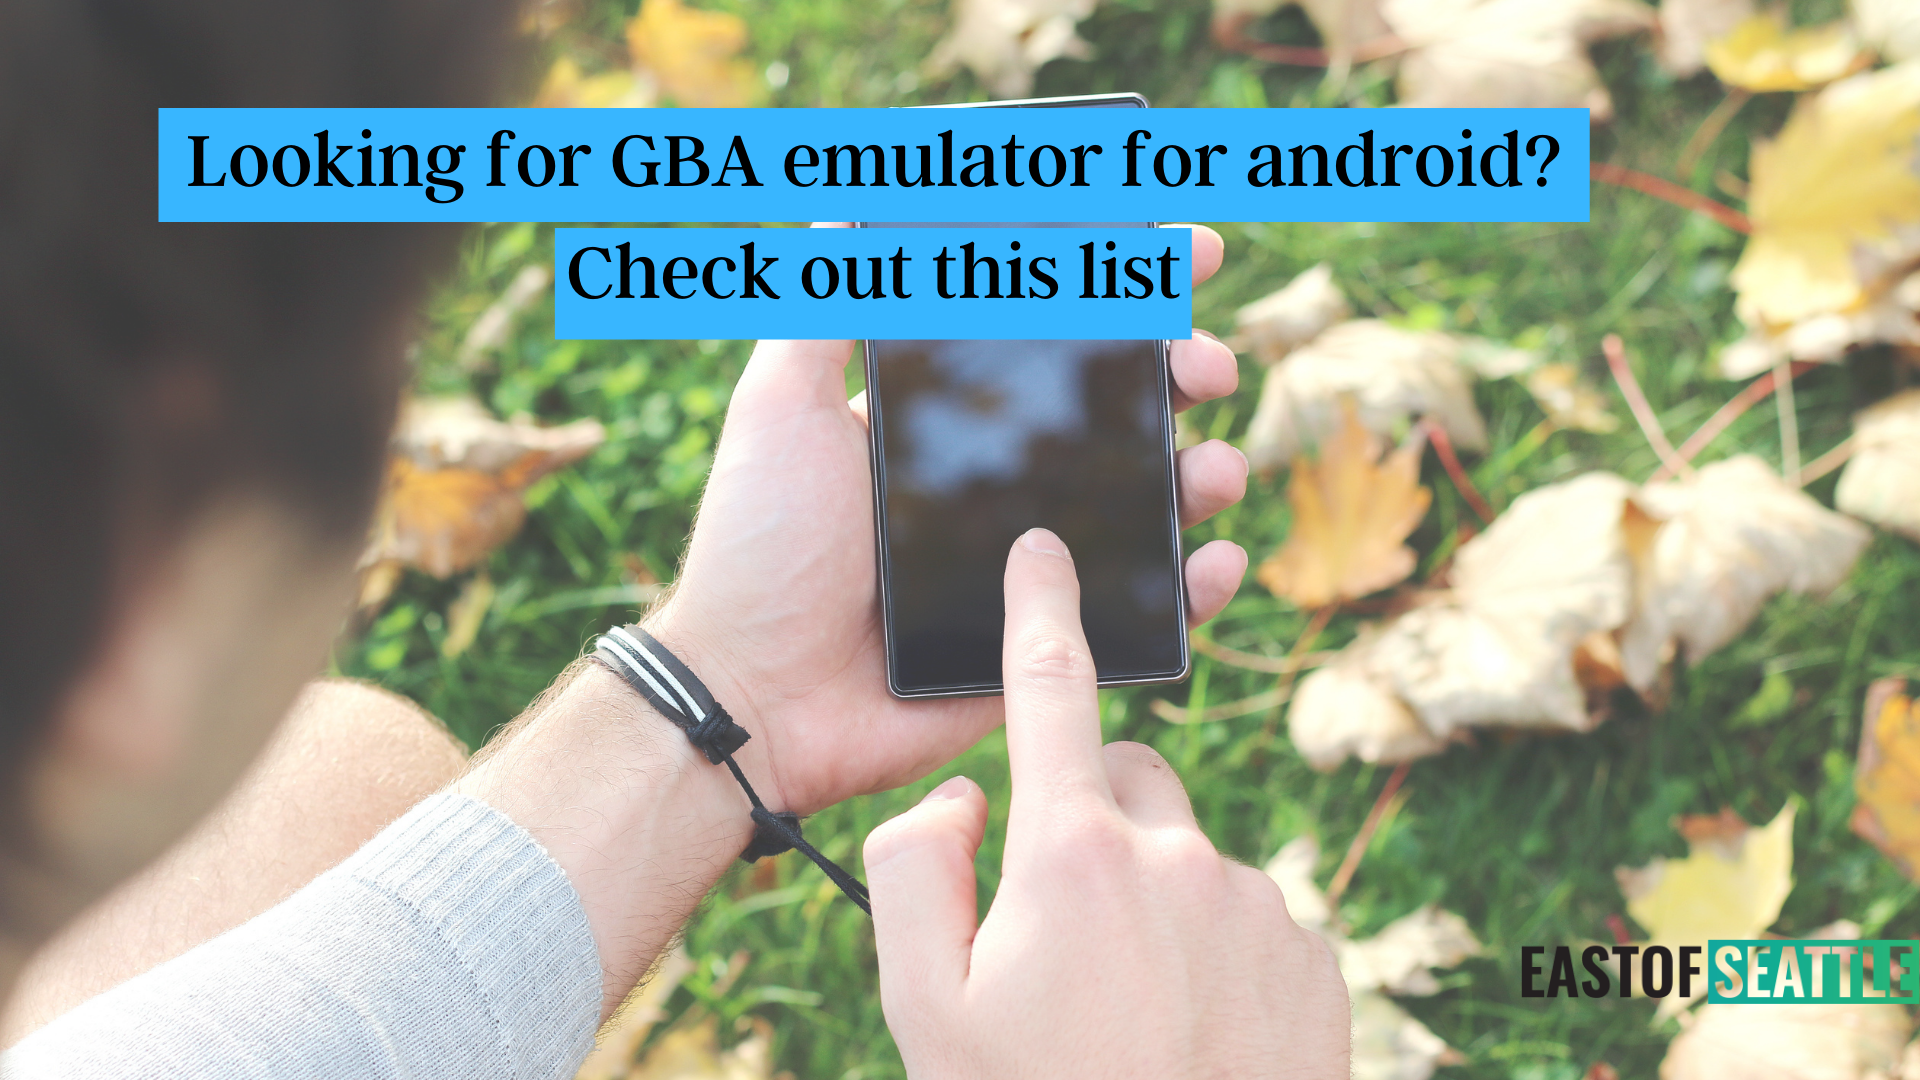 Looking for GBA emulator for android? Check out this list